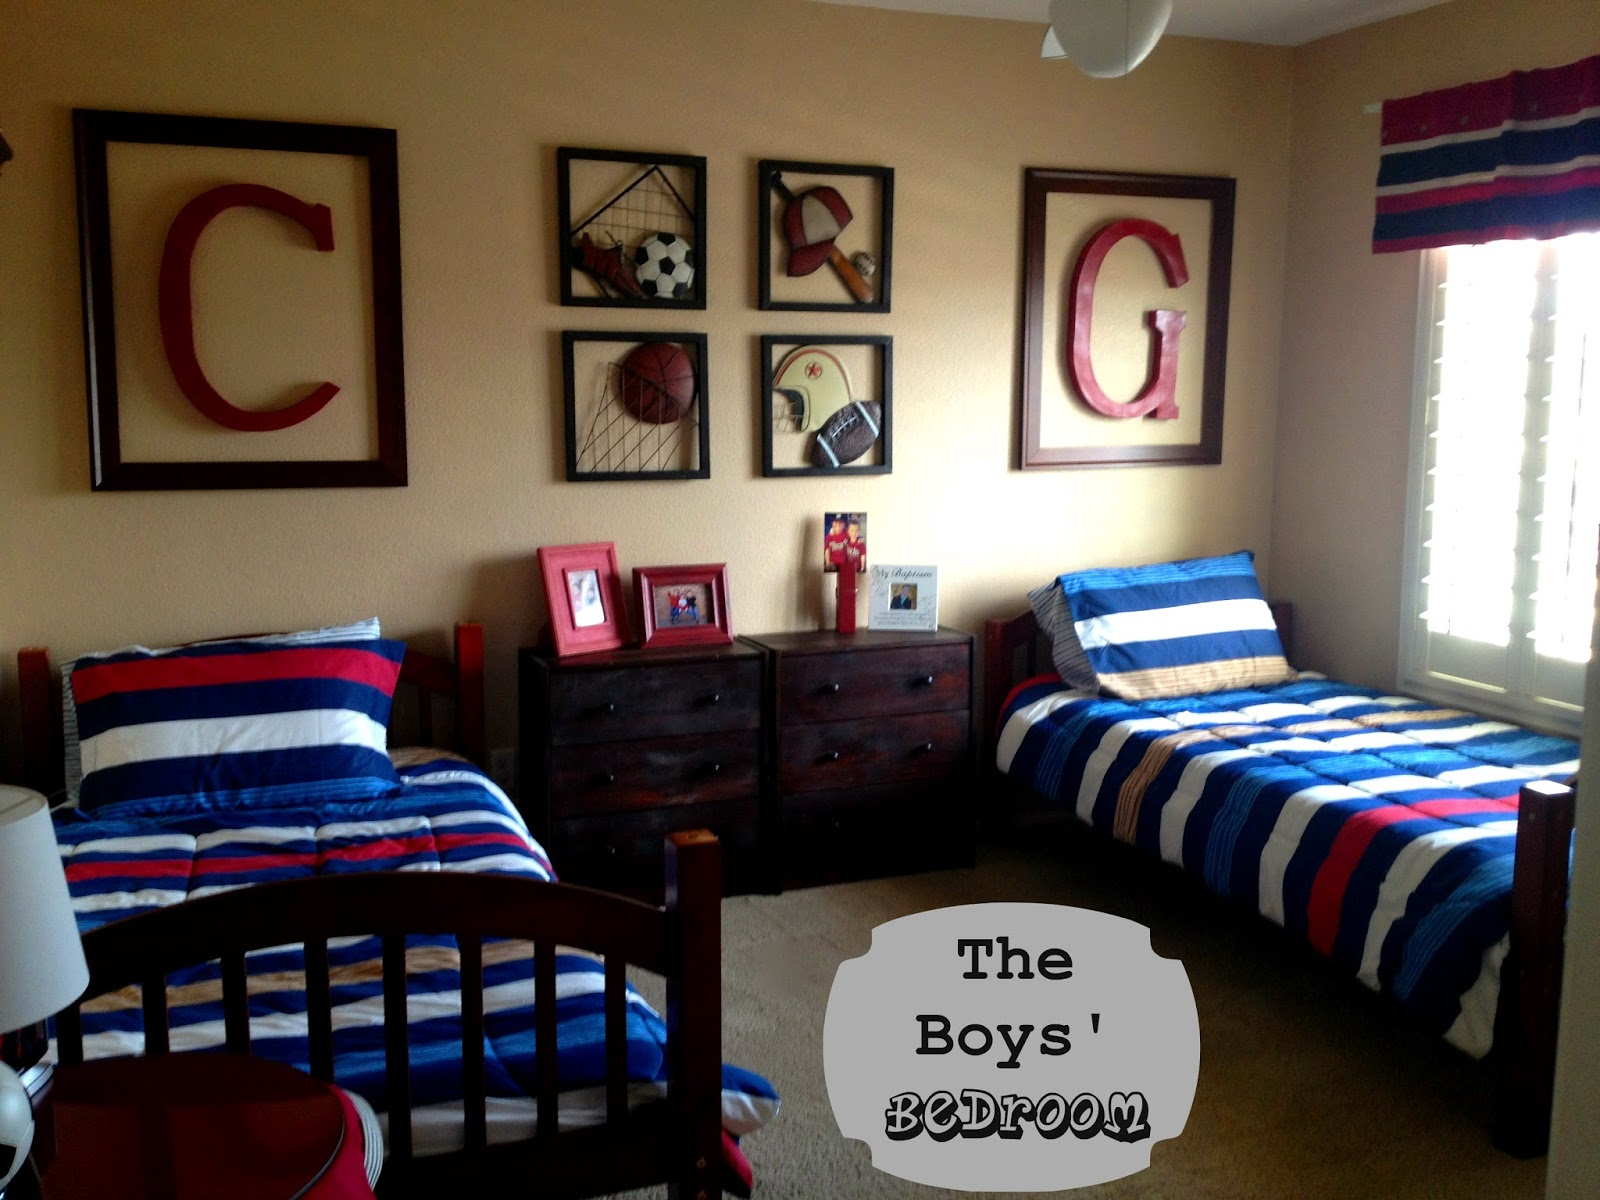 Marci Coombs: The Boys' Sports Themed Bedroom.